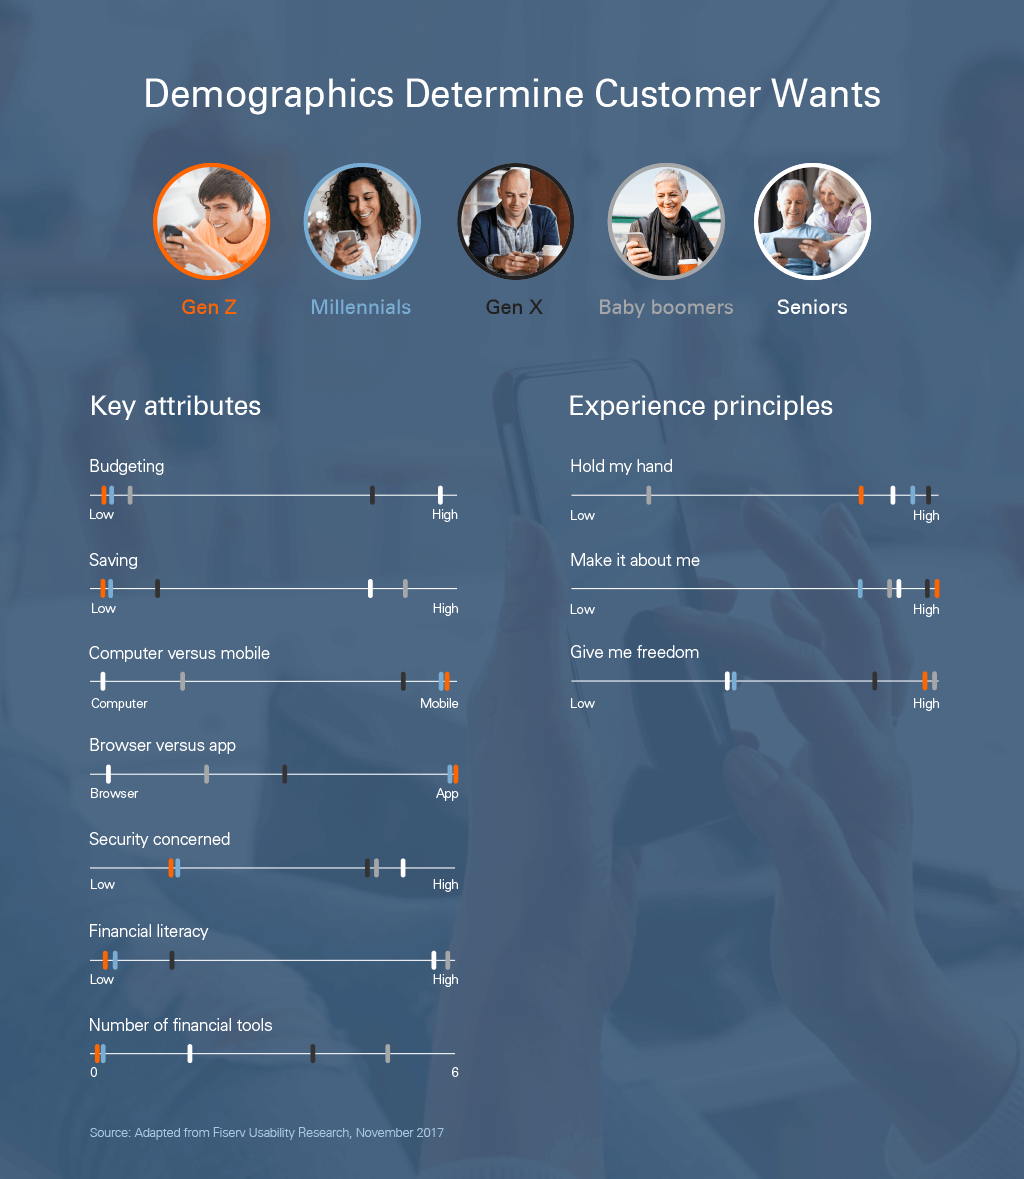 Demographics determine digital banking customer wants and needs